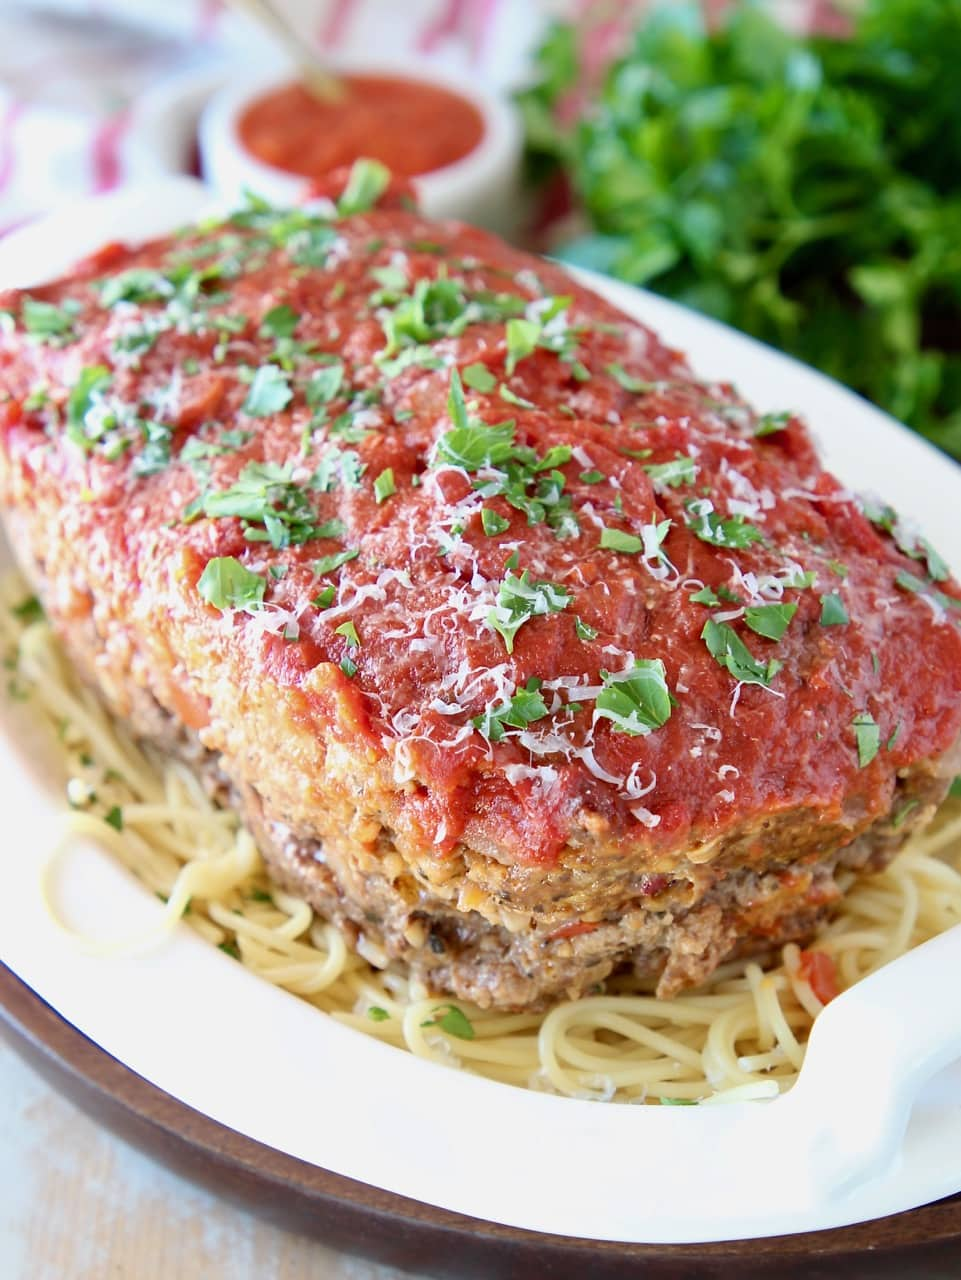 Italian meatloaf sitting on top of a bowl of spaghetti noodles, topped with fresh chopped parsley